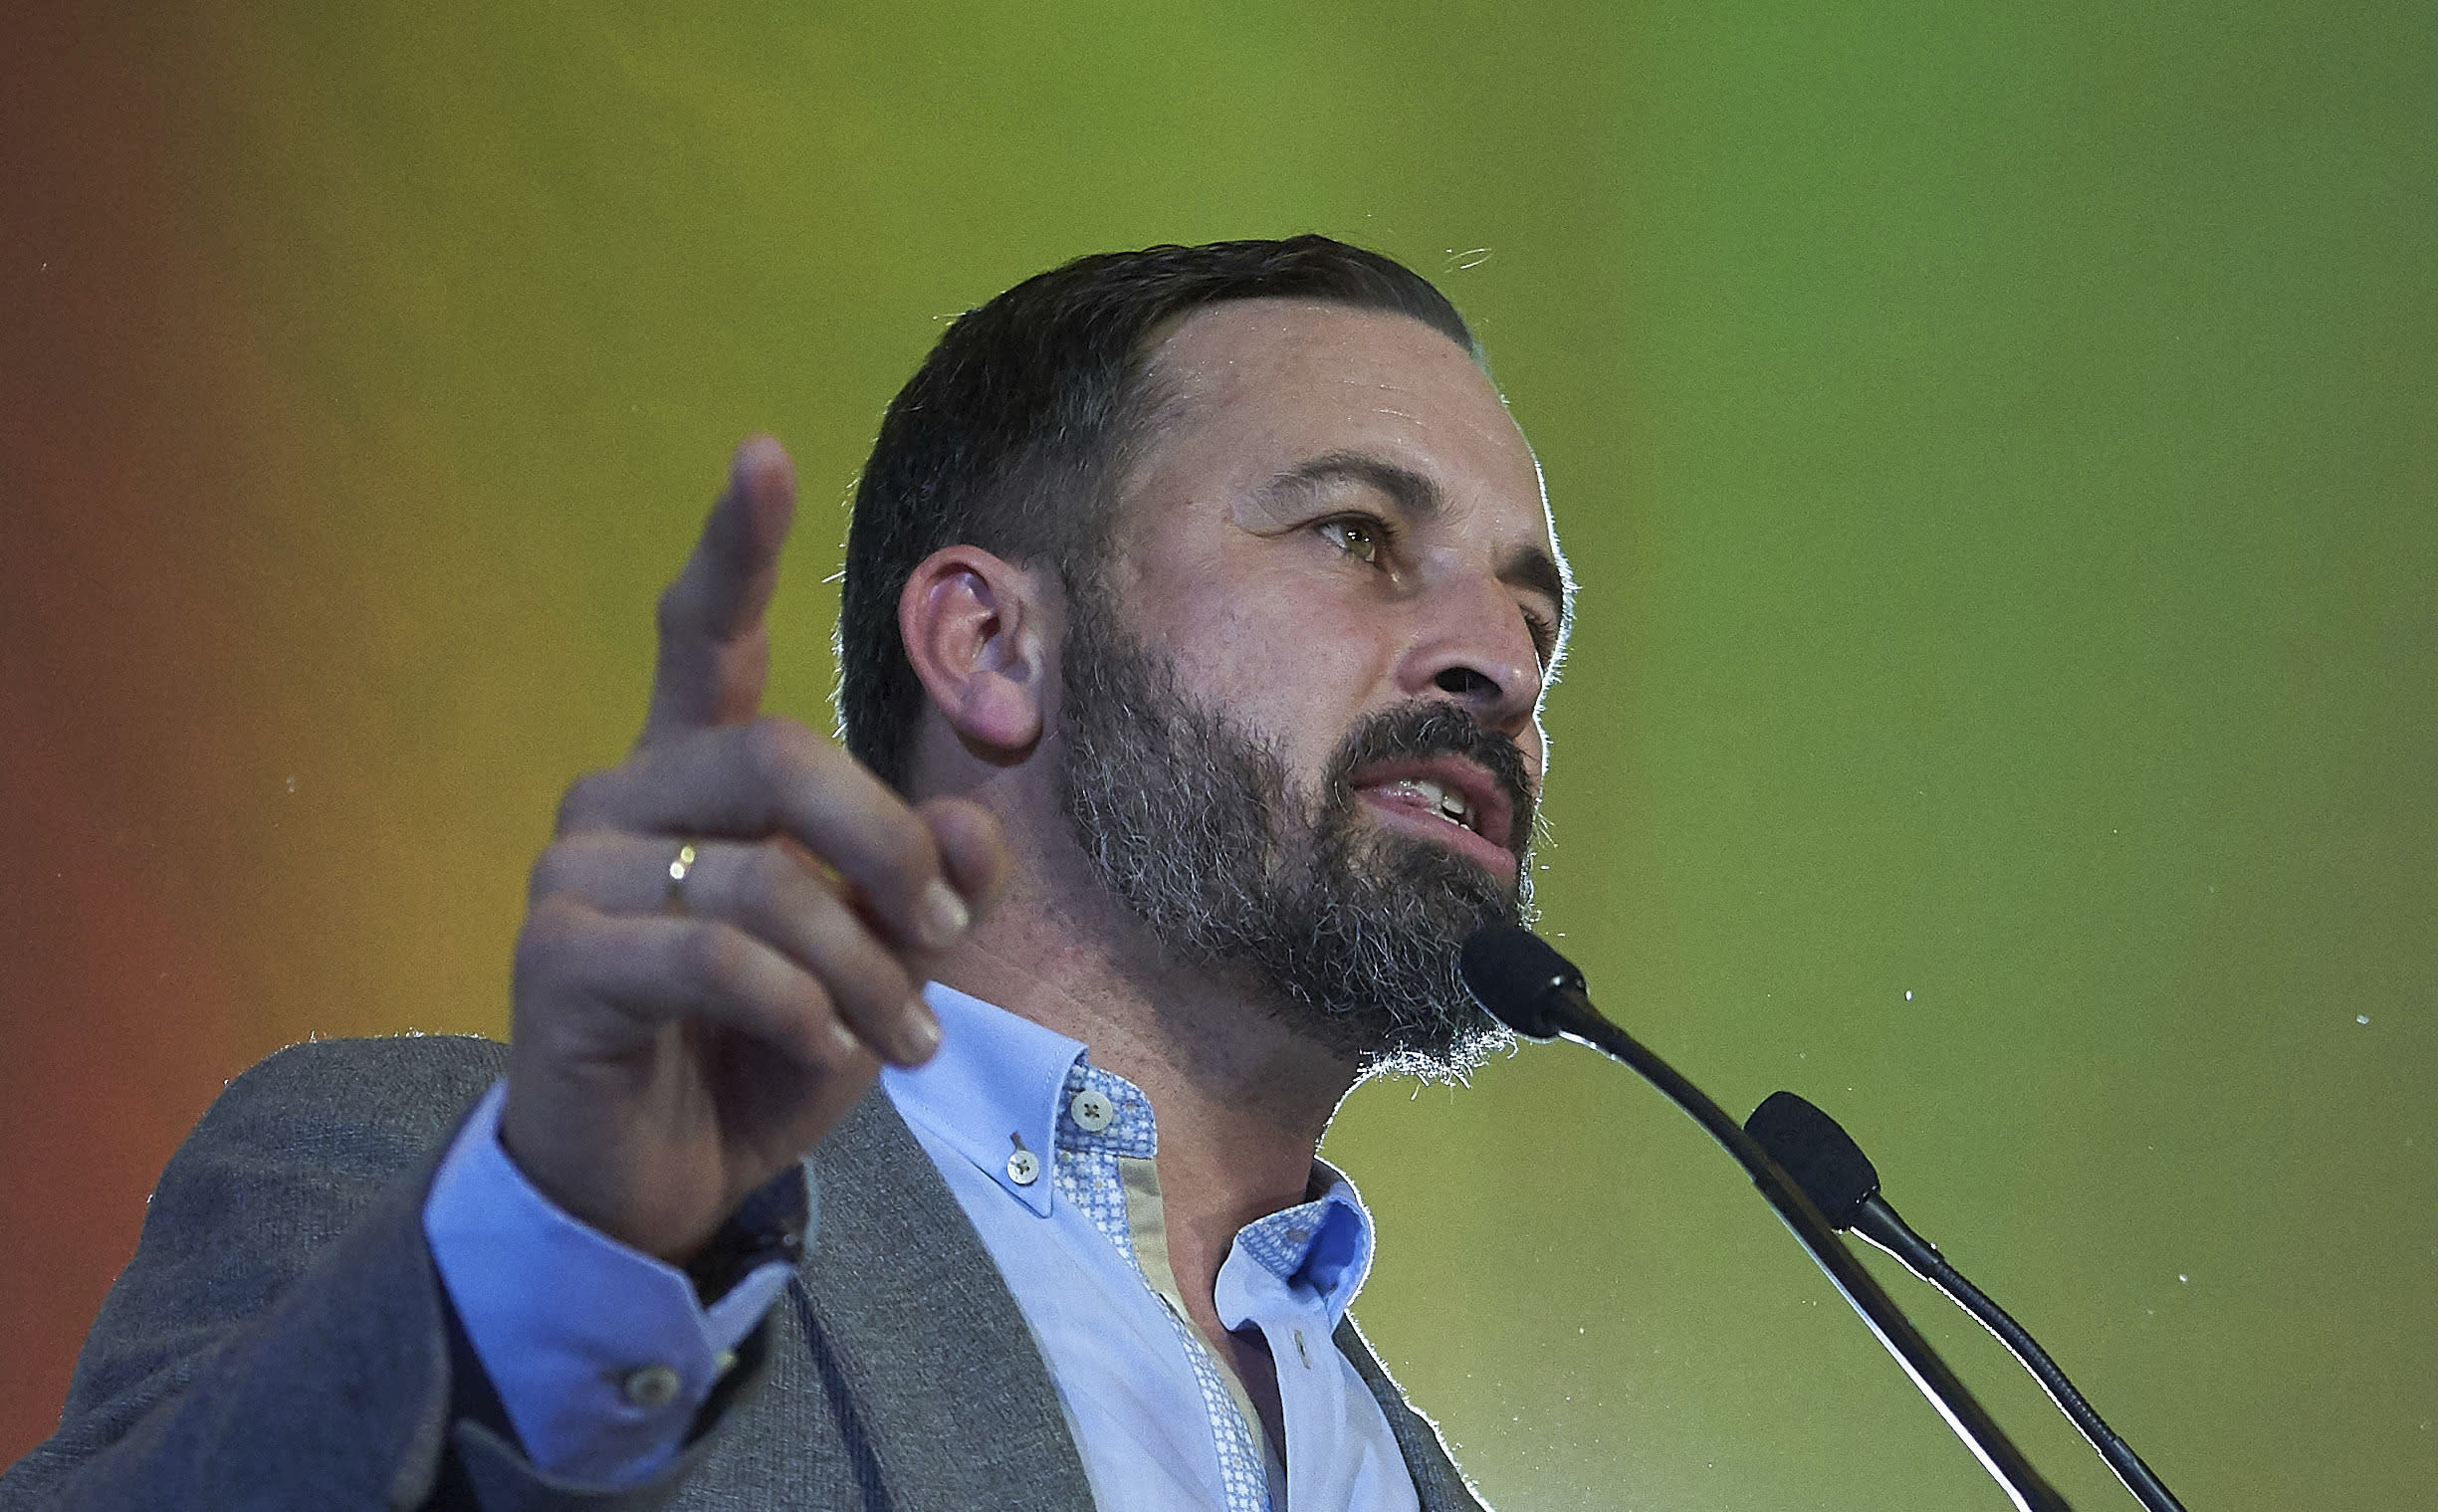 In this Sunday, Dec. 2, 2018 photo, Spain's far-right Vox Party President Santiago Abascal, takes part in a rally during regional elections in Andalusia, in Seville, Spain. The Socialists won just 33 seats in the Andalusia legislature, compared to 47 in 2015. The party could lose control of Spain's most populated region for the first time in 36 years if parties on the right can agree to form a government. The anti-immigrant, extreme right Vox party won 12 seats - its first in any Spanish legislative body. (AP Photo/Gogo Lobato)